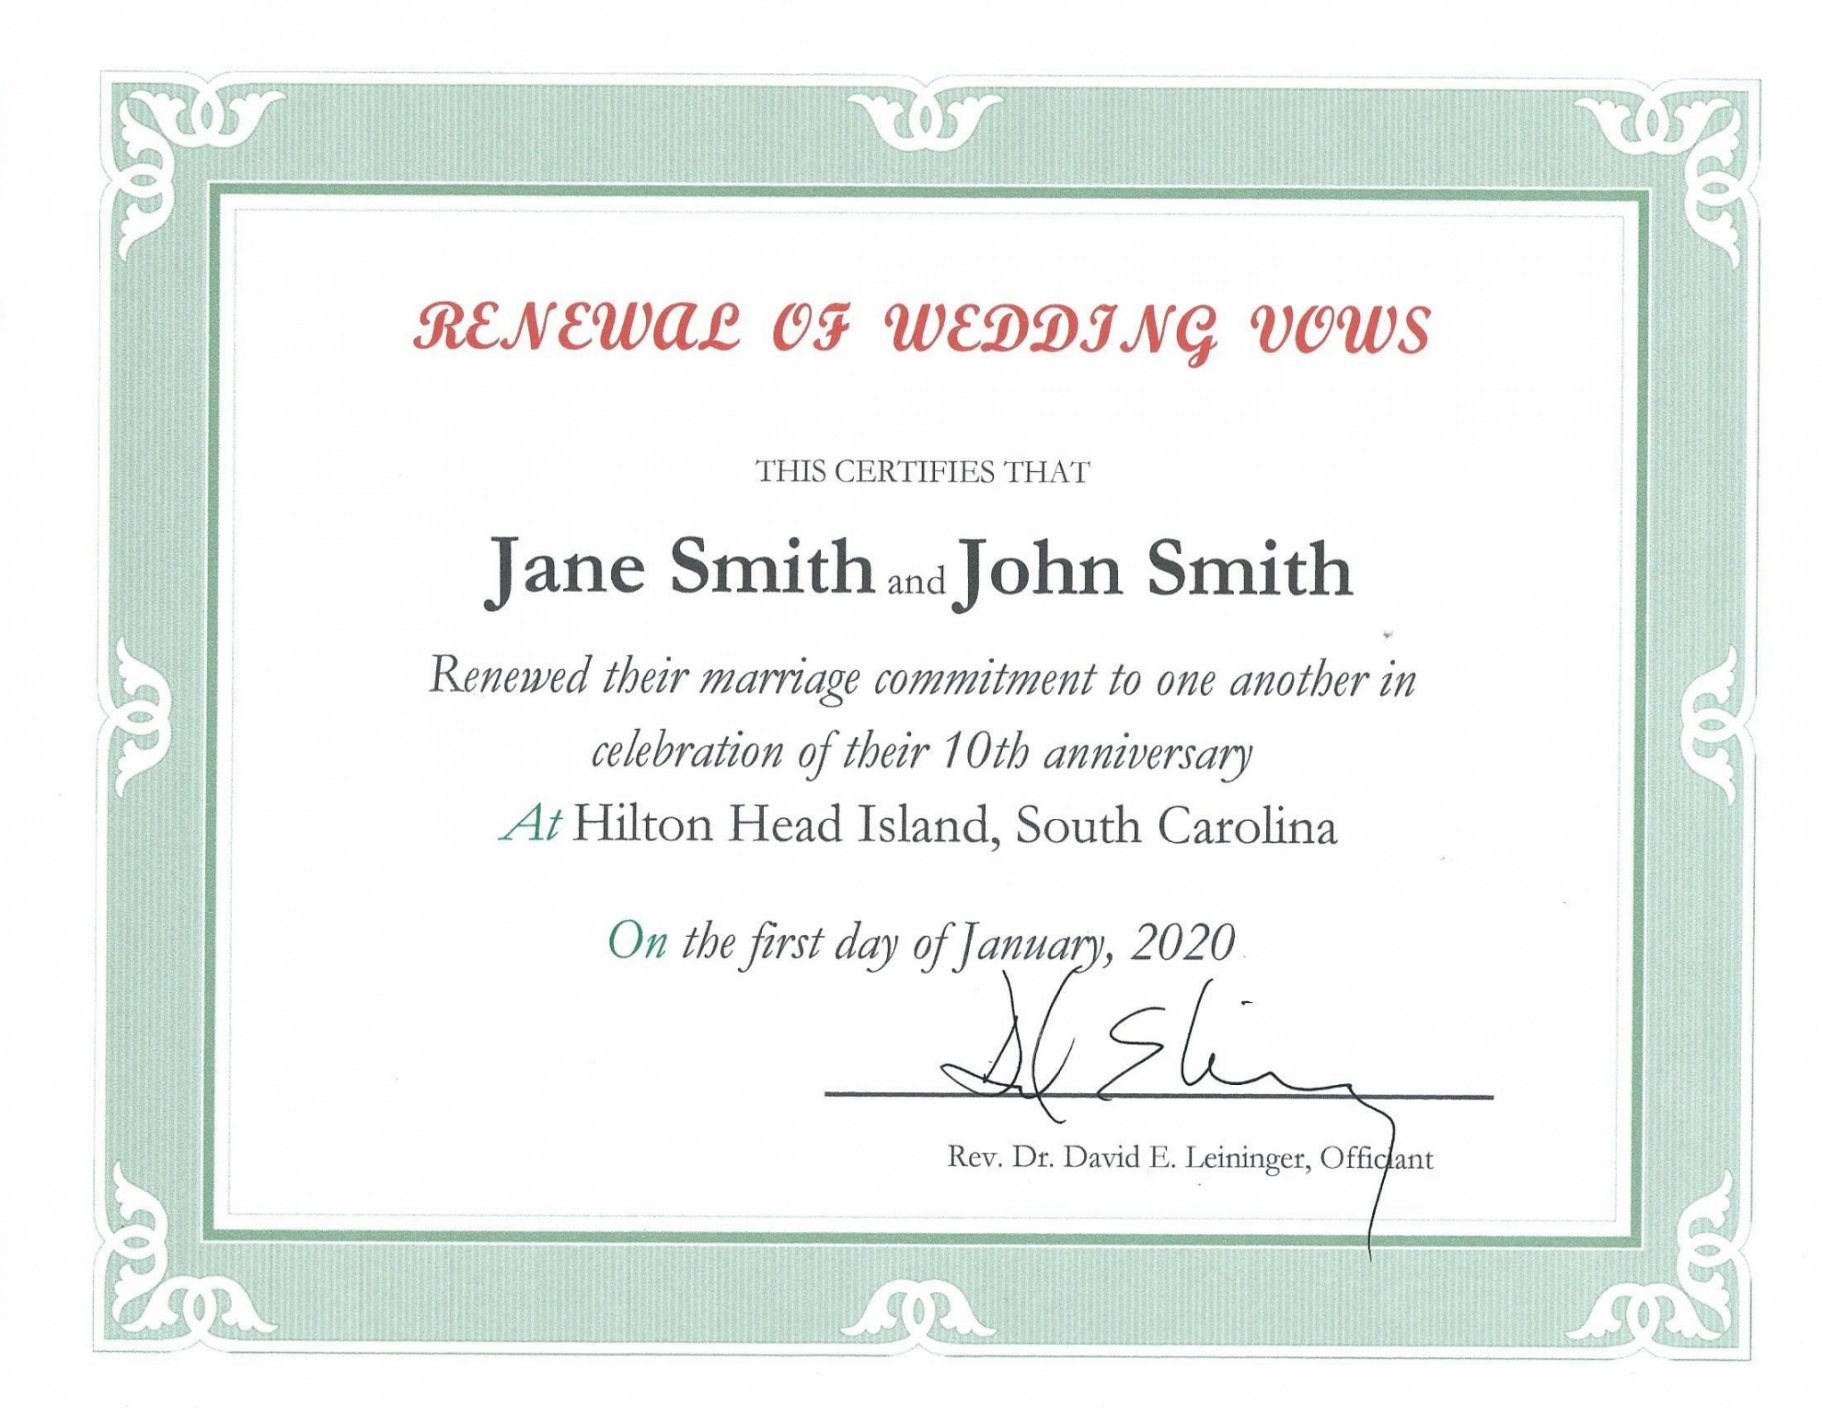 free free wedding vow renewal certificate printable birthday certificates renewal of marriage vows certificate template example